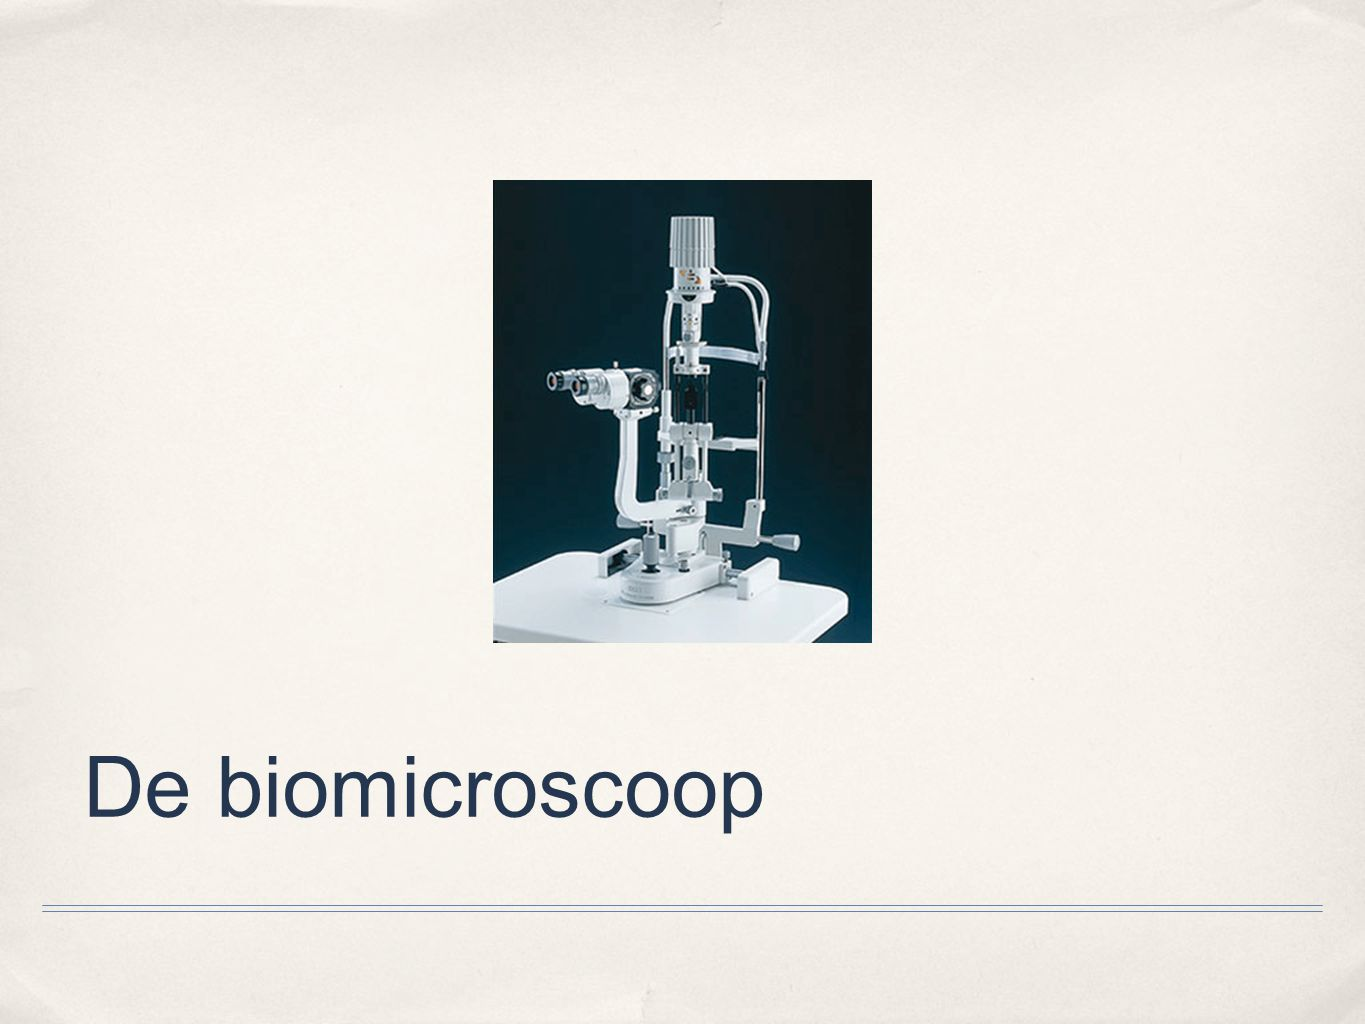 De biomicroscoop